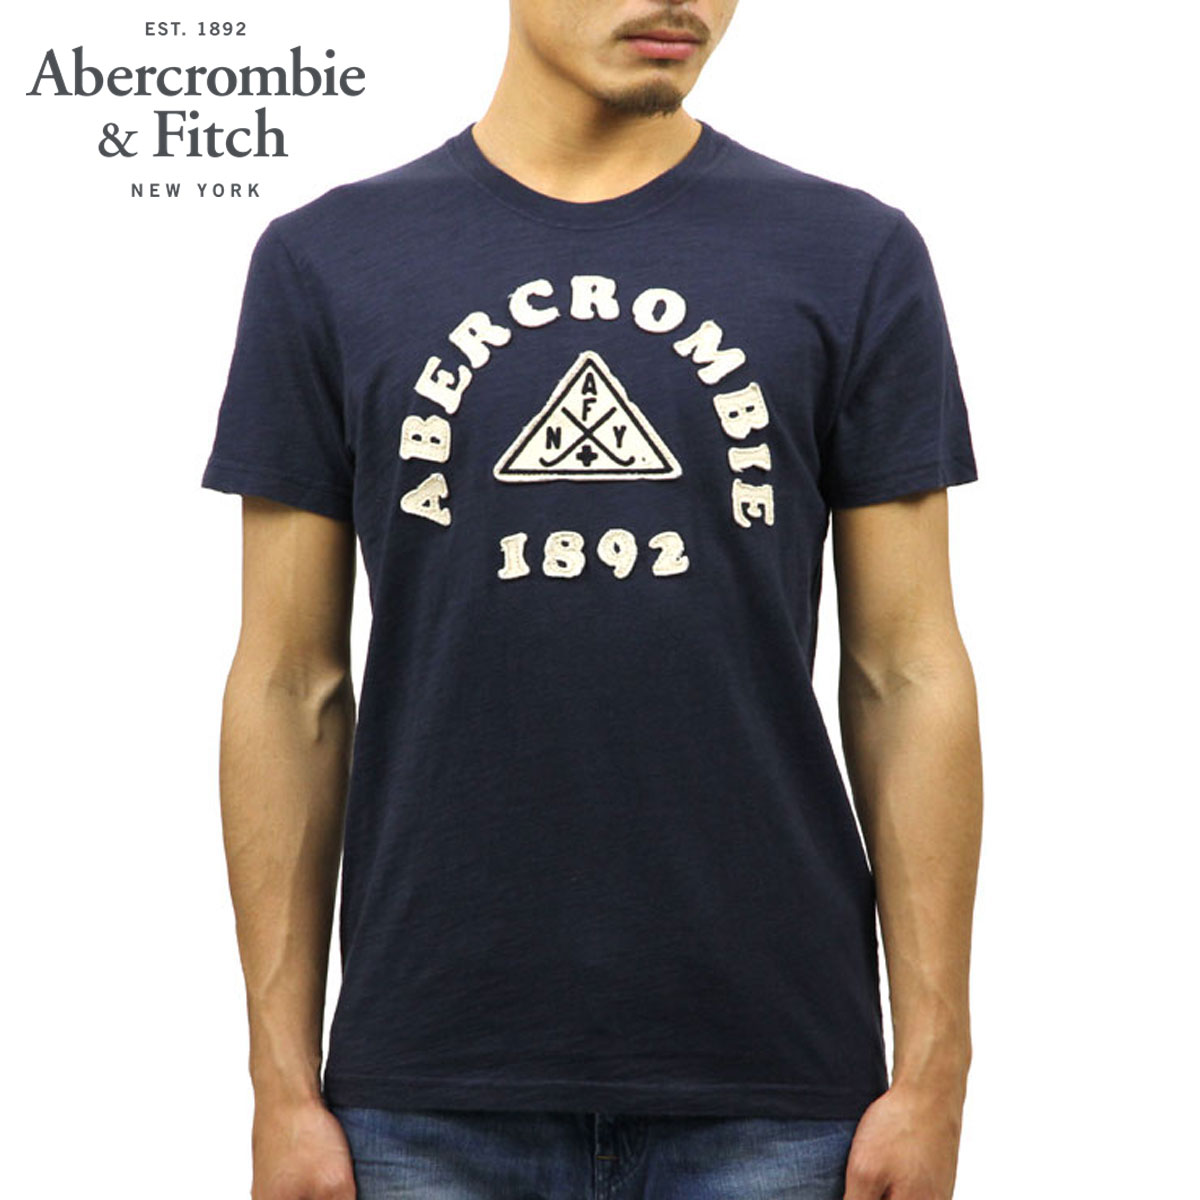 ecb8a47c ABBA black Abercrombie & Fitch regular article men short sleeves T-shirt  LOGO GRAPHIC ...